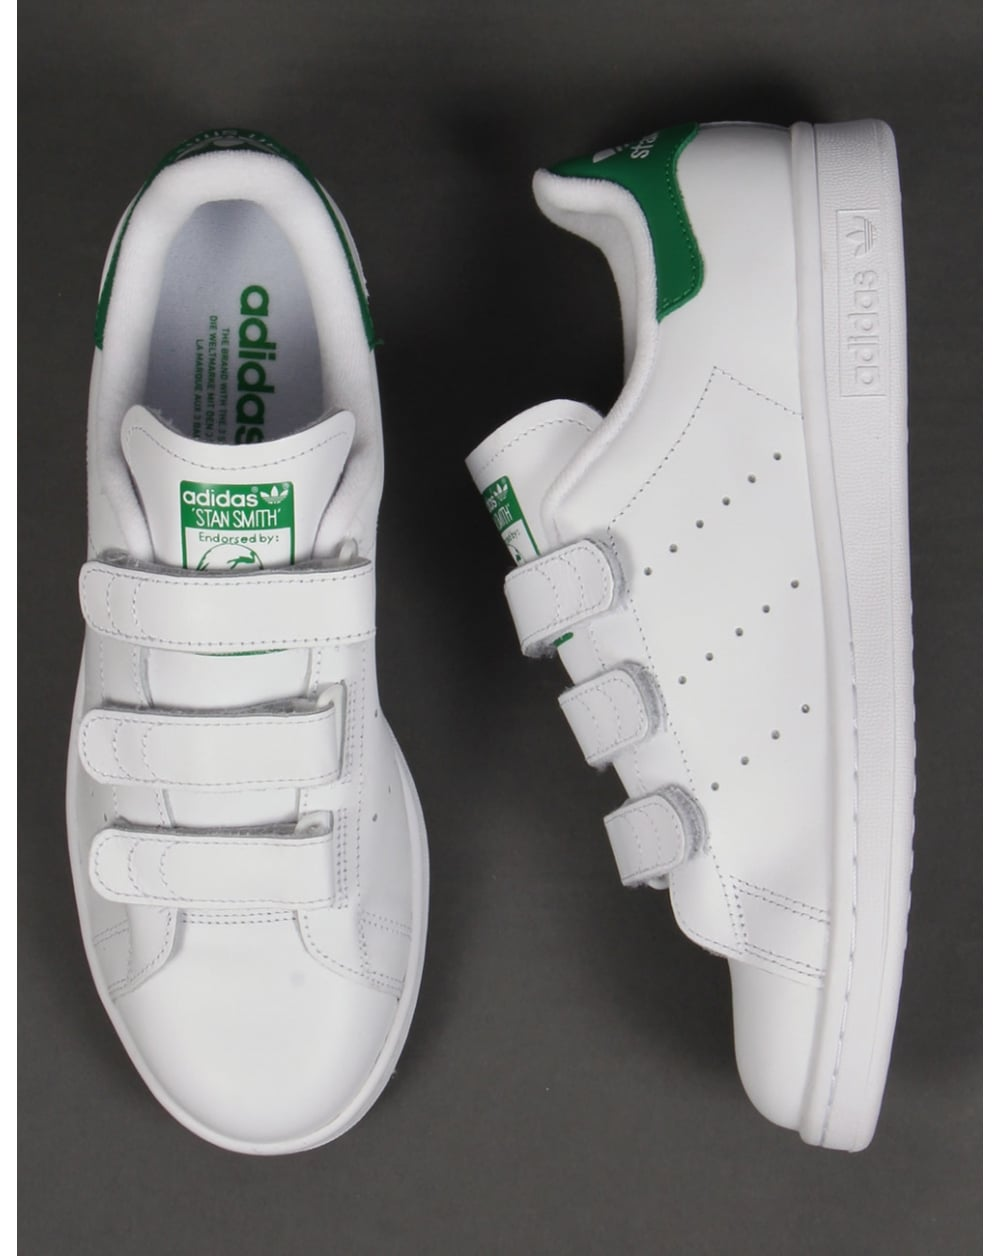 zgyie adidas-stan-smith-cf-trainers-white-green-p3875-40907_image.jpg